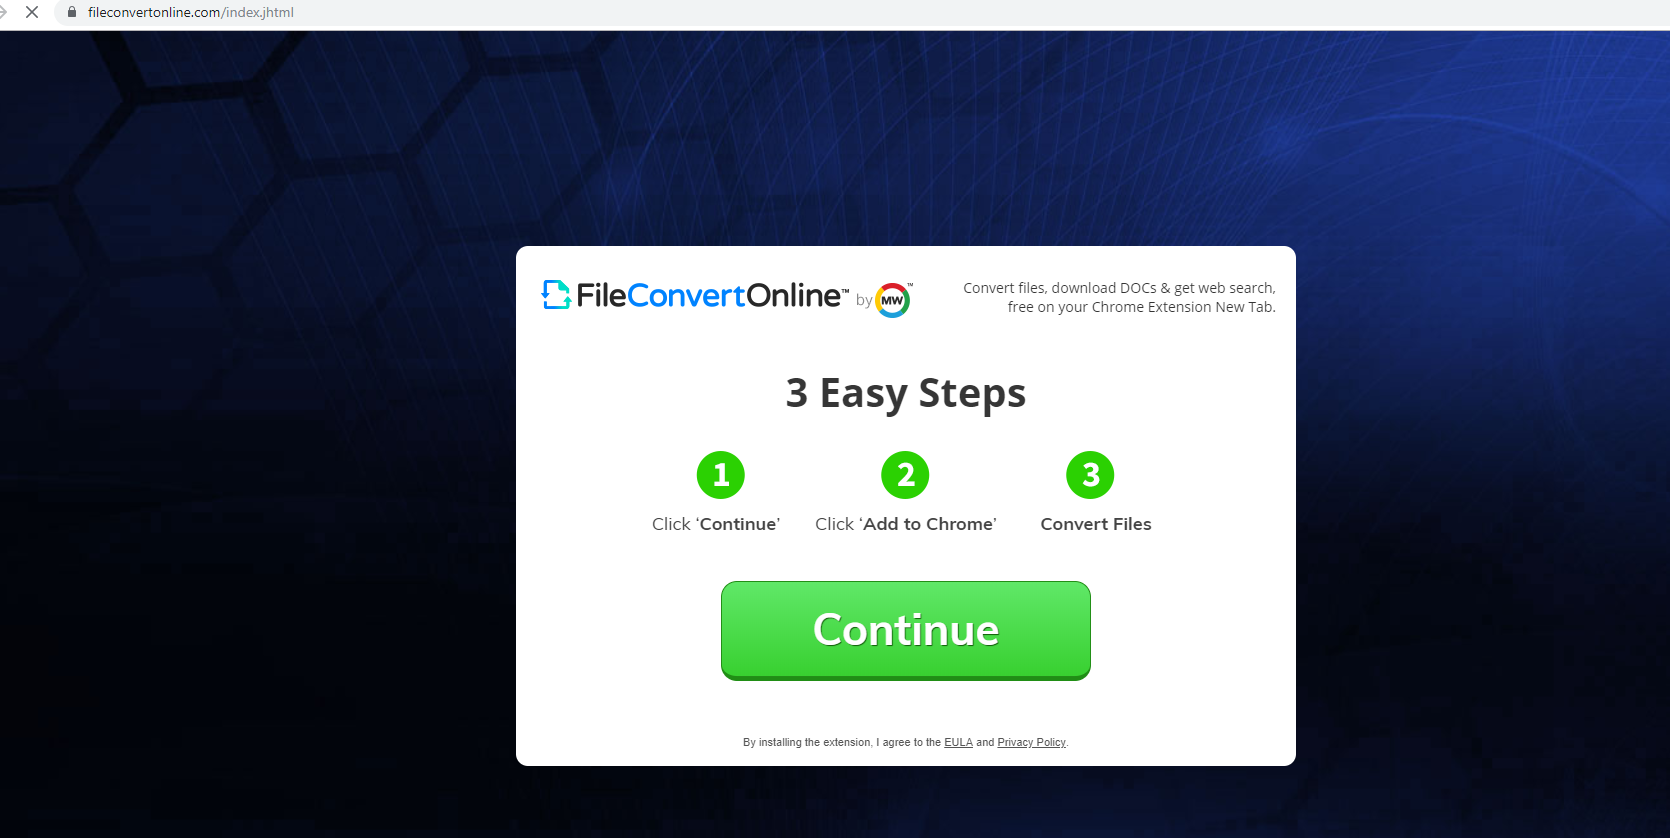 Comment supprimer FileConvertOnline